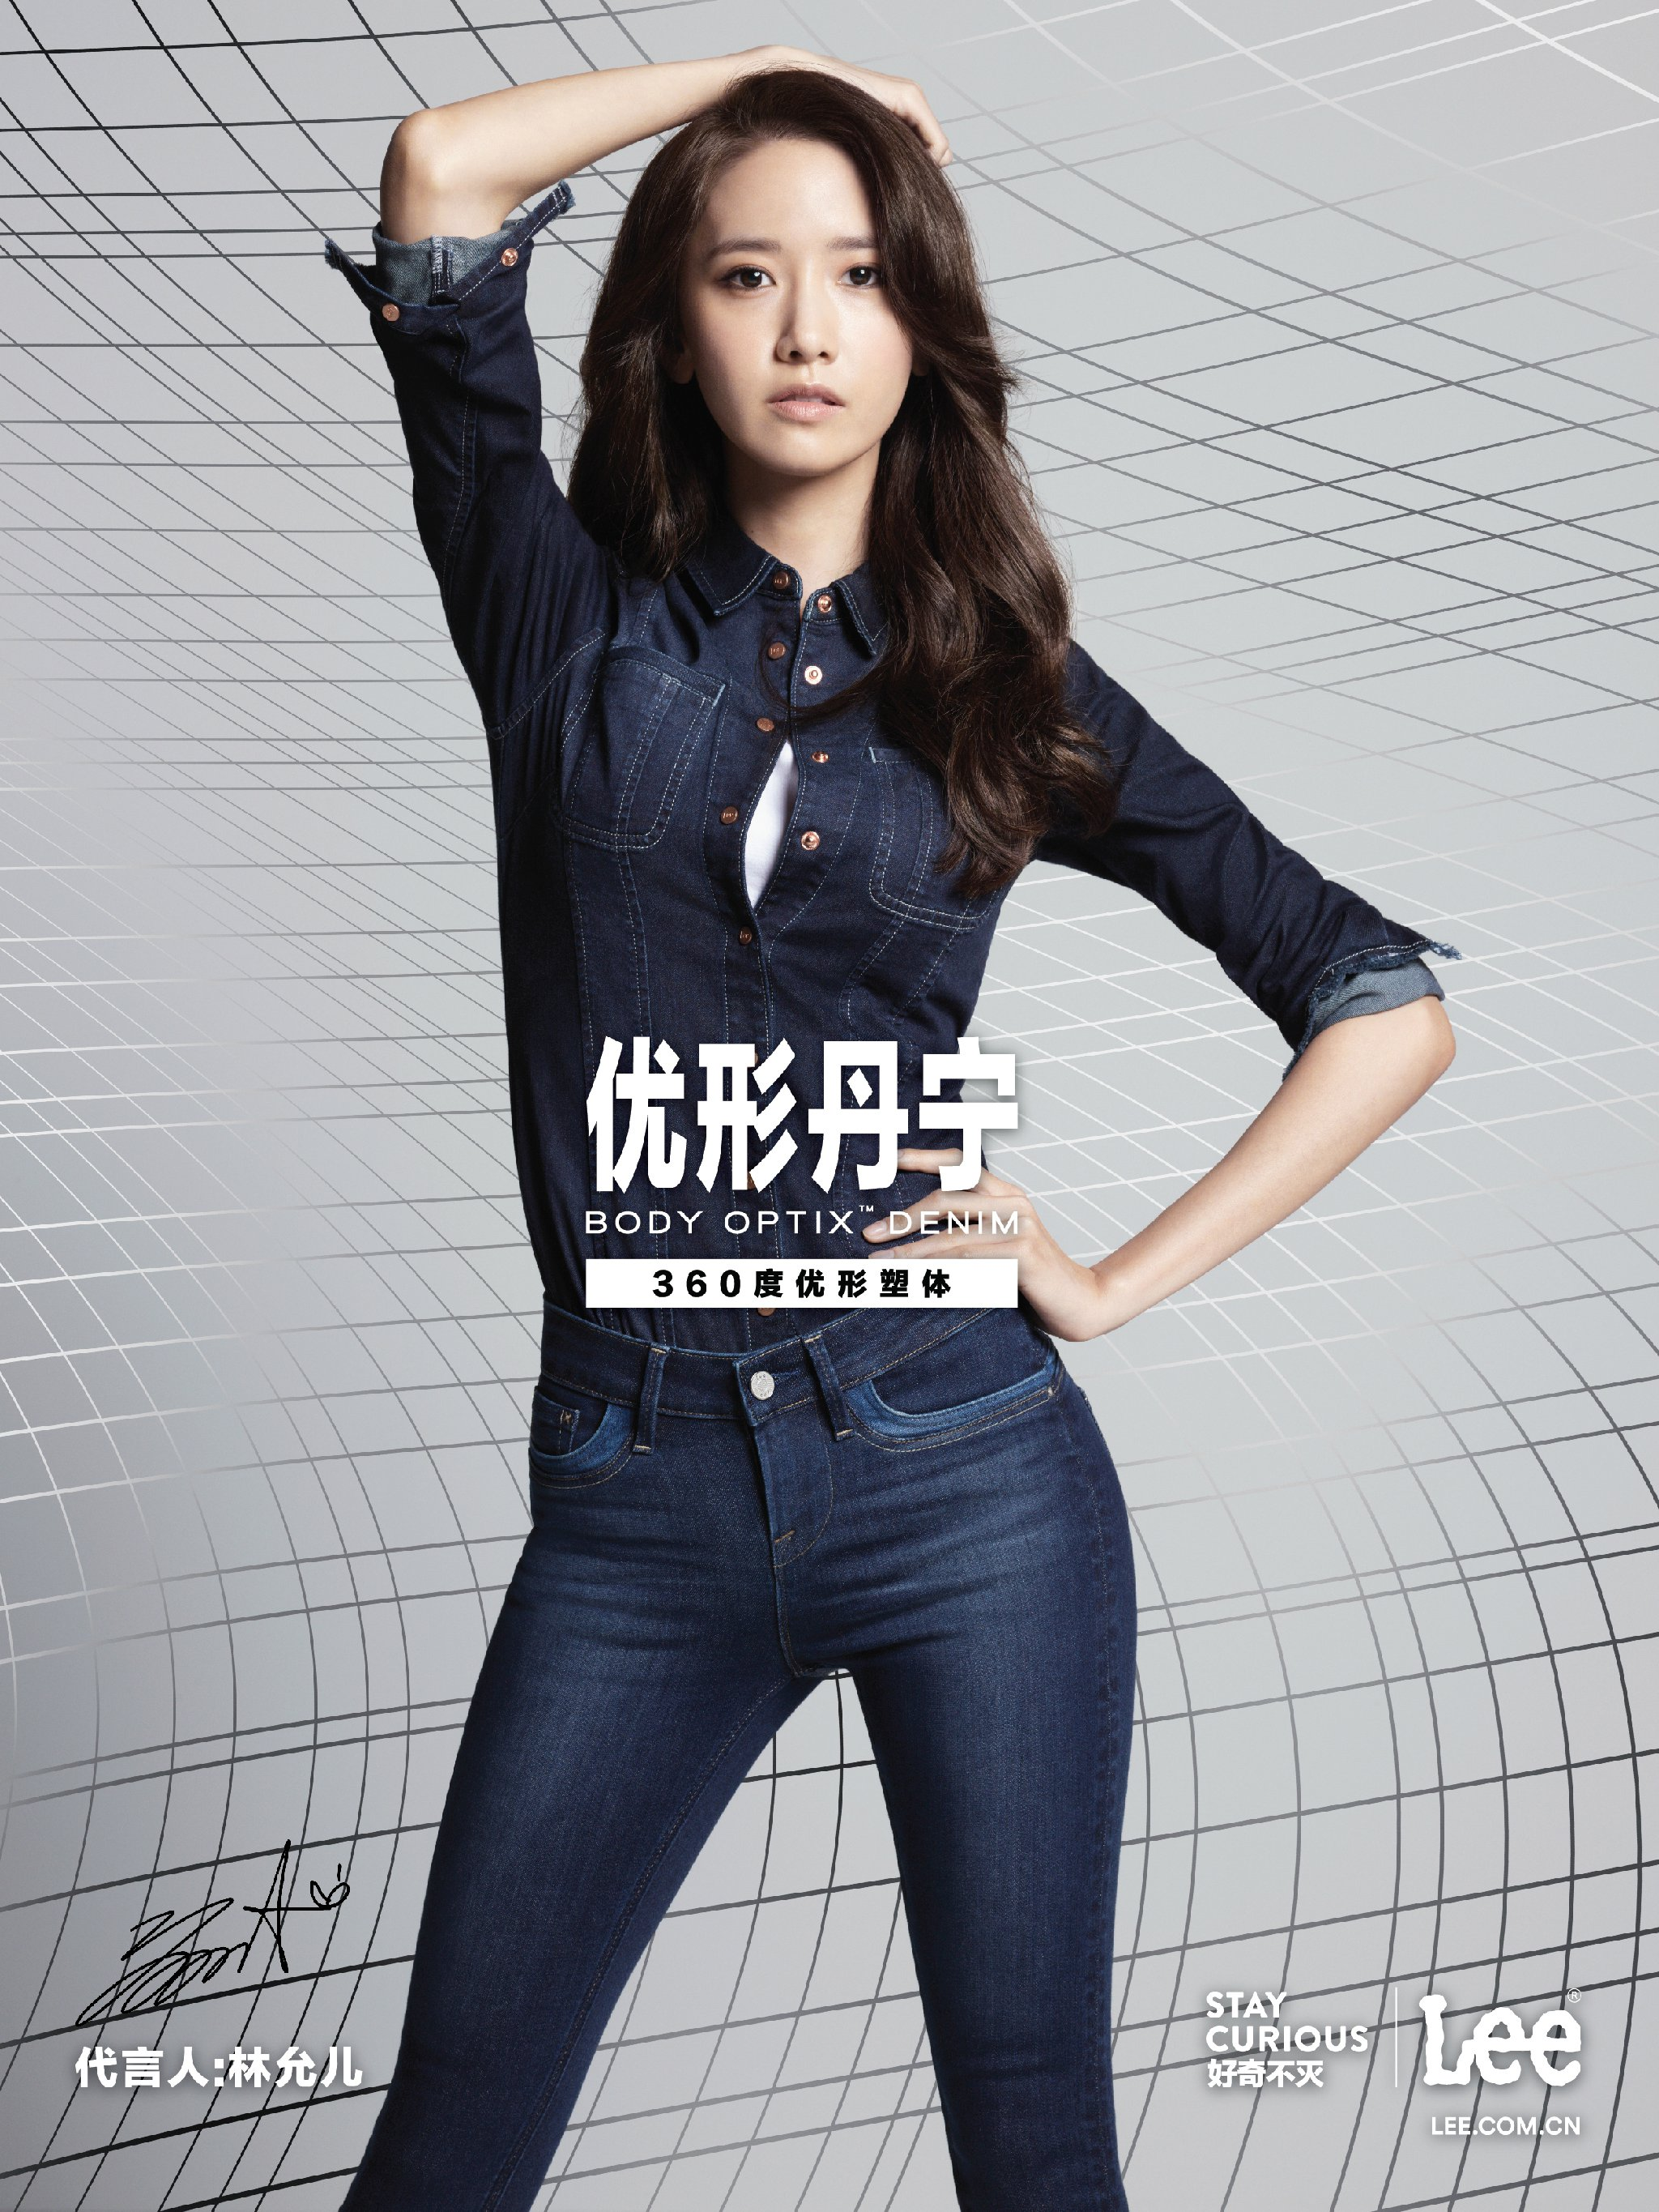 YoonA 1 [2048x2730] with chinese logo.jpg